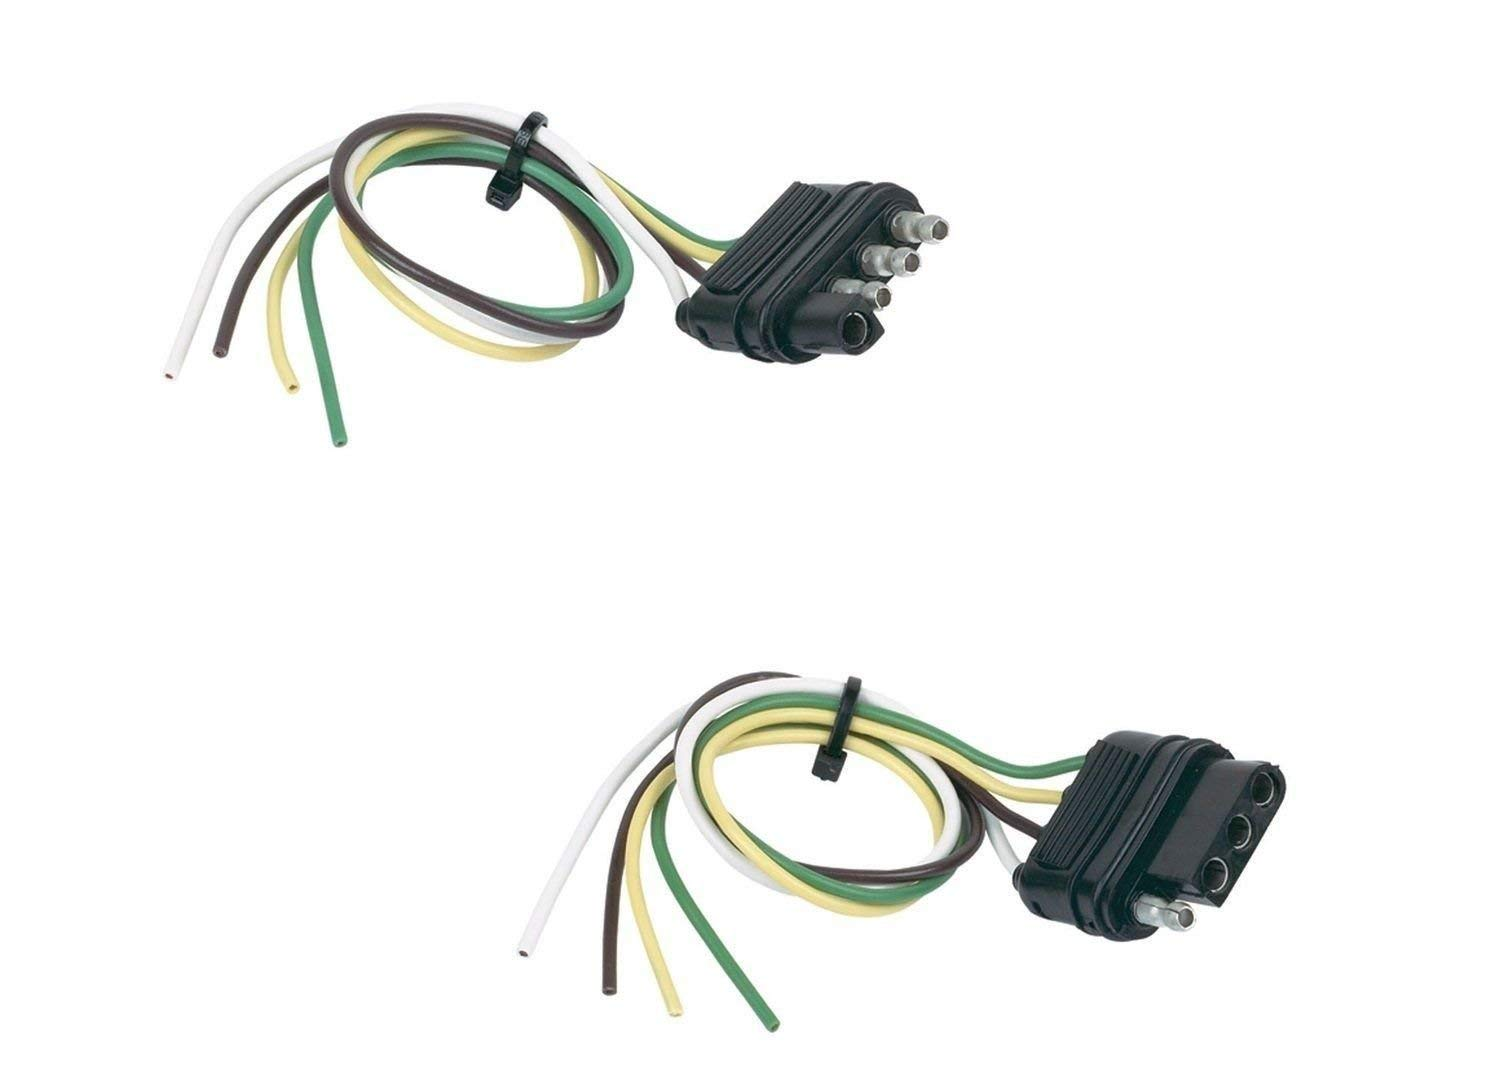 hight resolution of get quotations hopkins 48175 basic wiring solution 4 wire flat vehicle trailer side